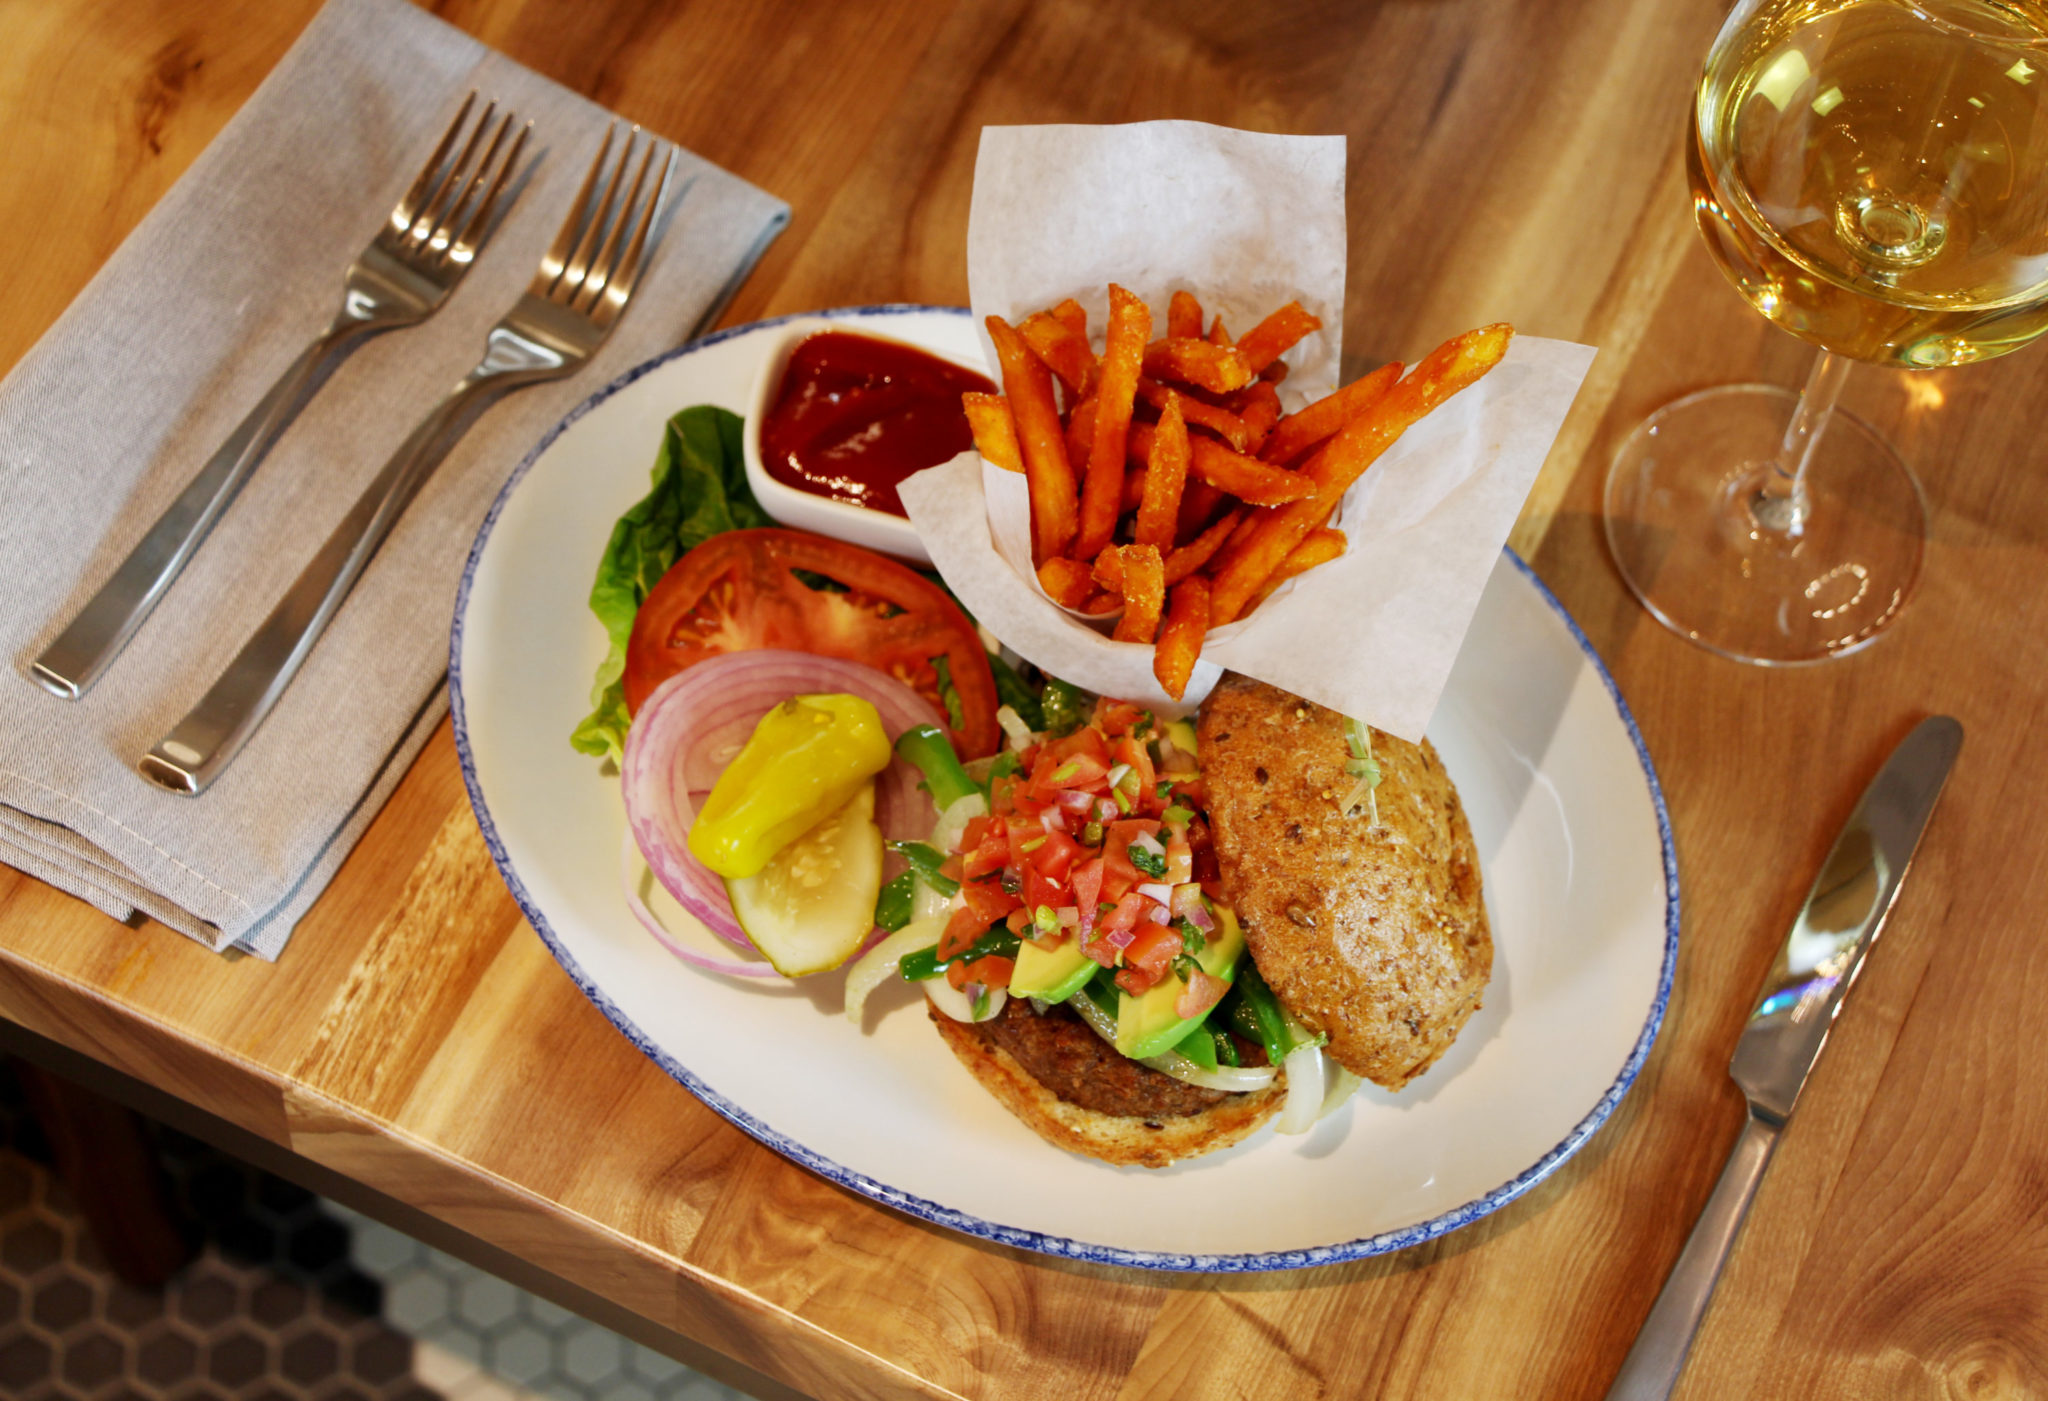 The Commentary menu is filled with vegan fare, like the meatless Beyond Burger. Photo courtesy of the Commentary Social House.